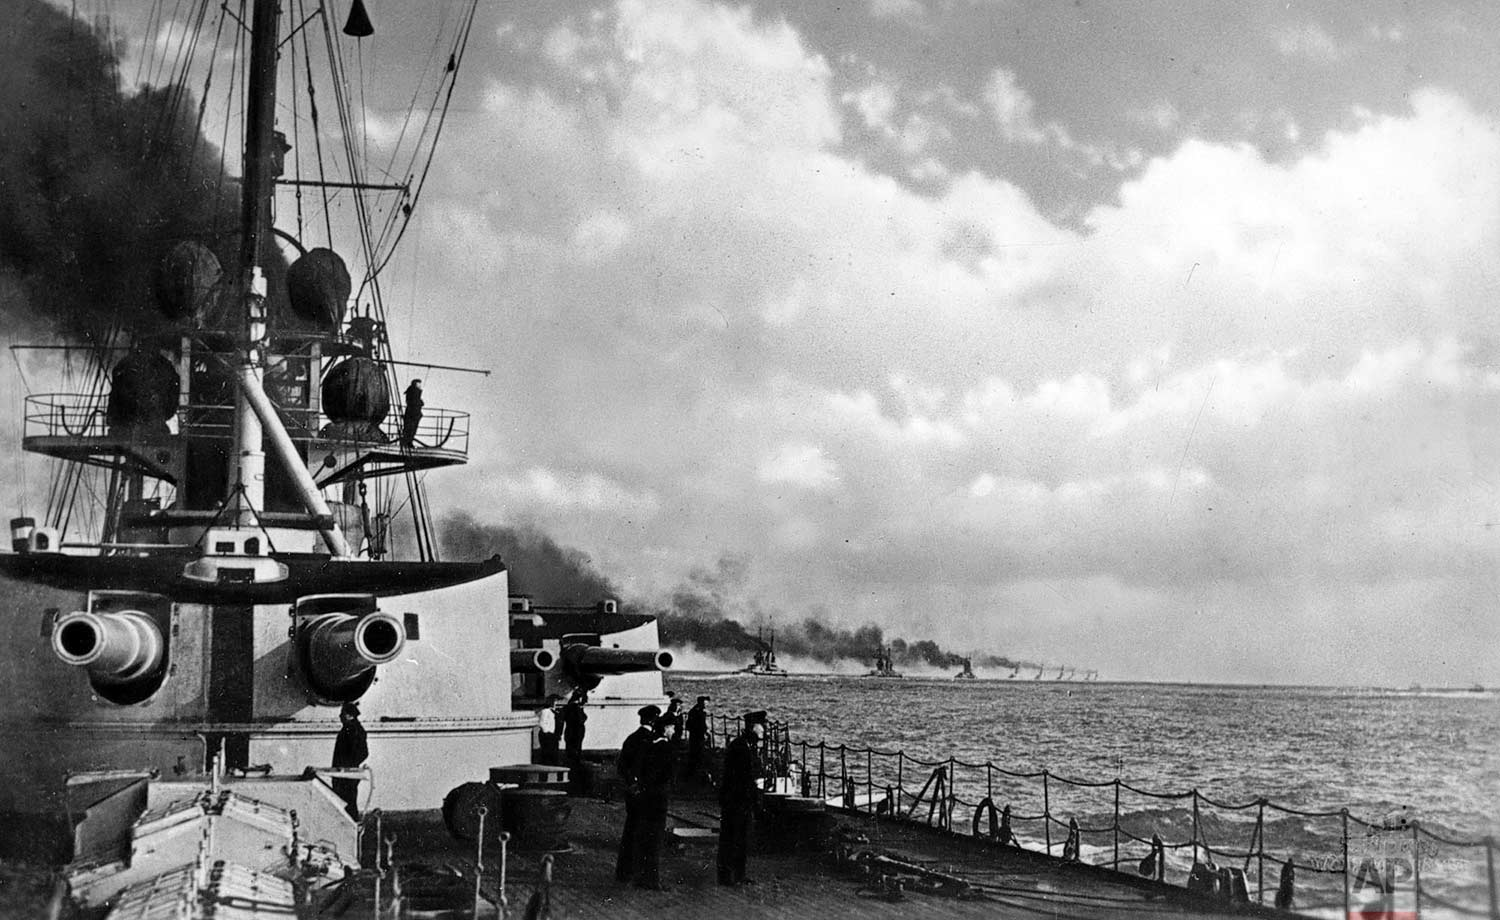 In this May 31, 1916 photo, the German fleet with battle cruisers on the way in the North Sea to meet the British Grand Fleet in the Battle of Jutland during World War One. (AP Photo)